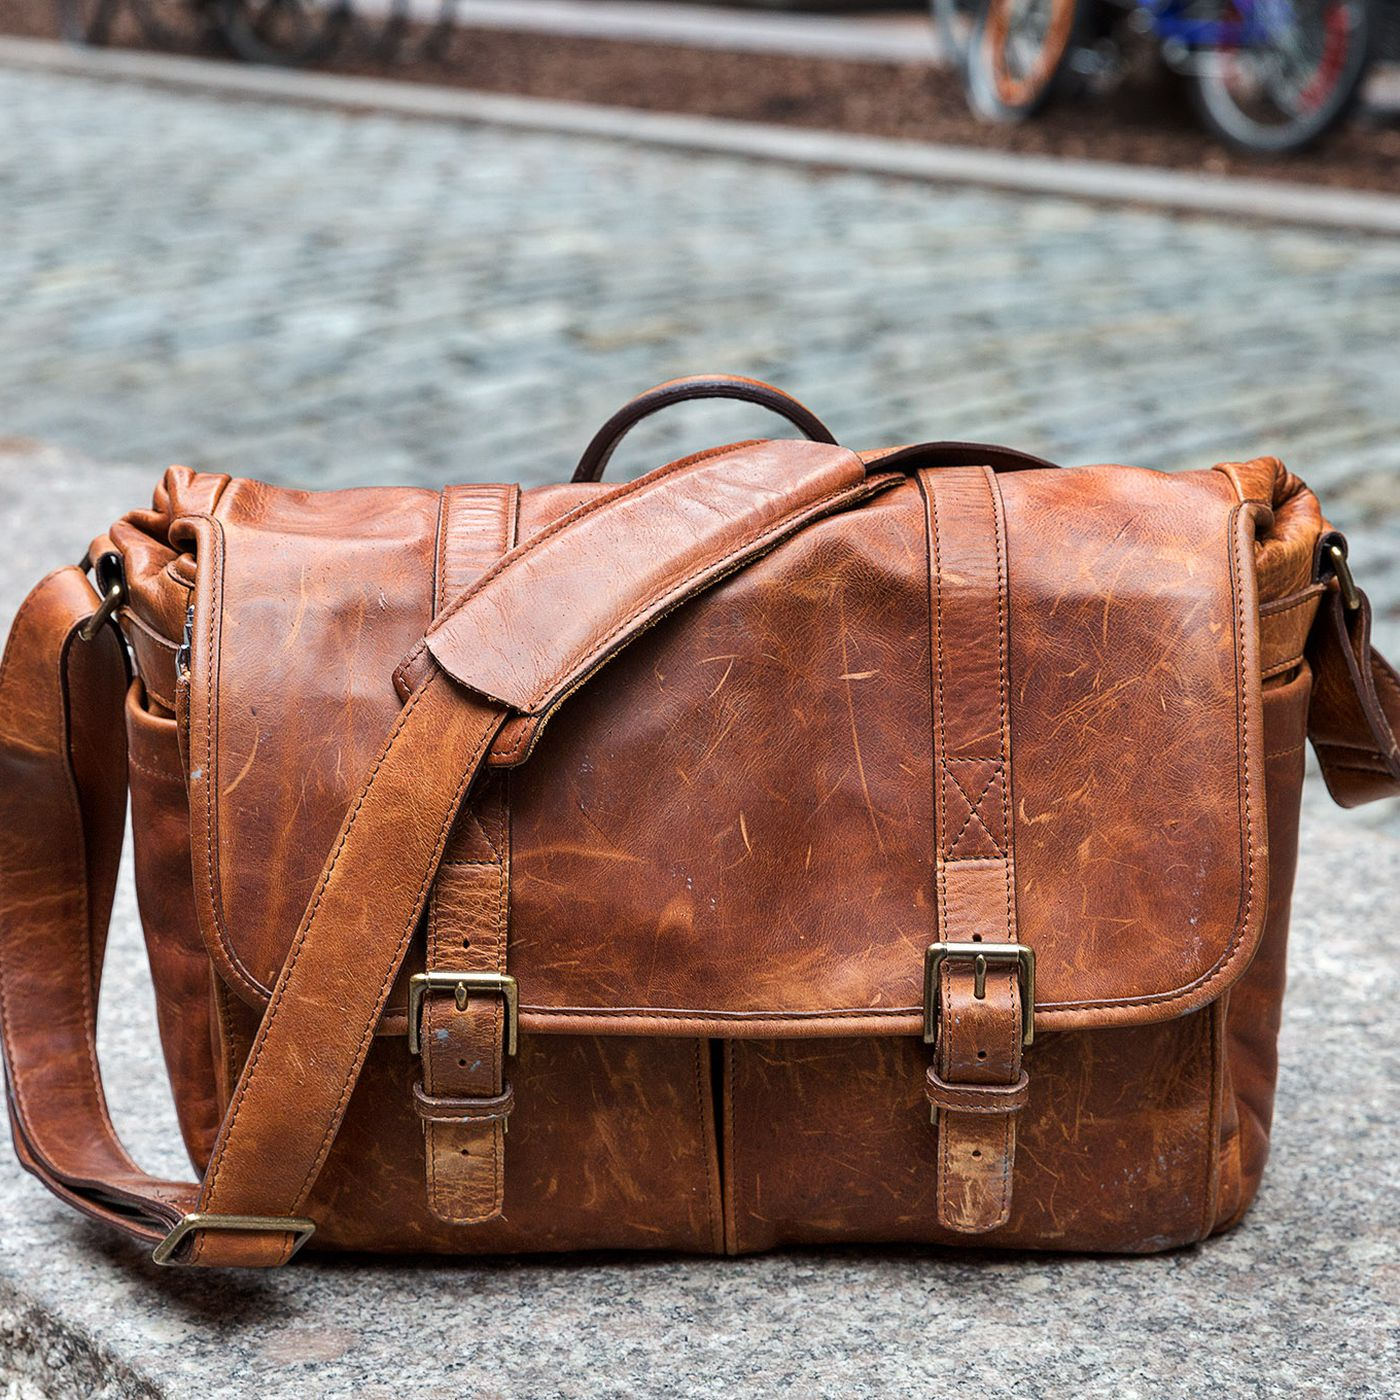 ONA Brixton camera bag review: awful, and I love it - The Verge